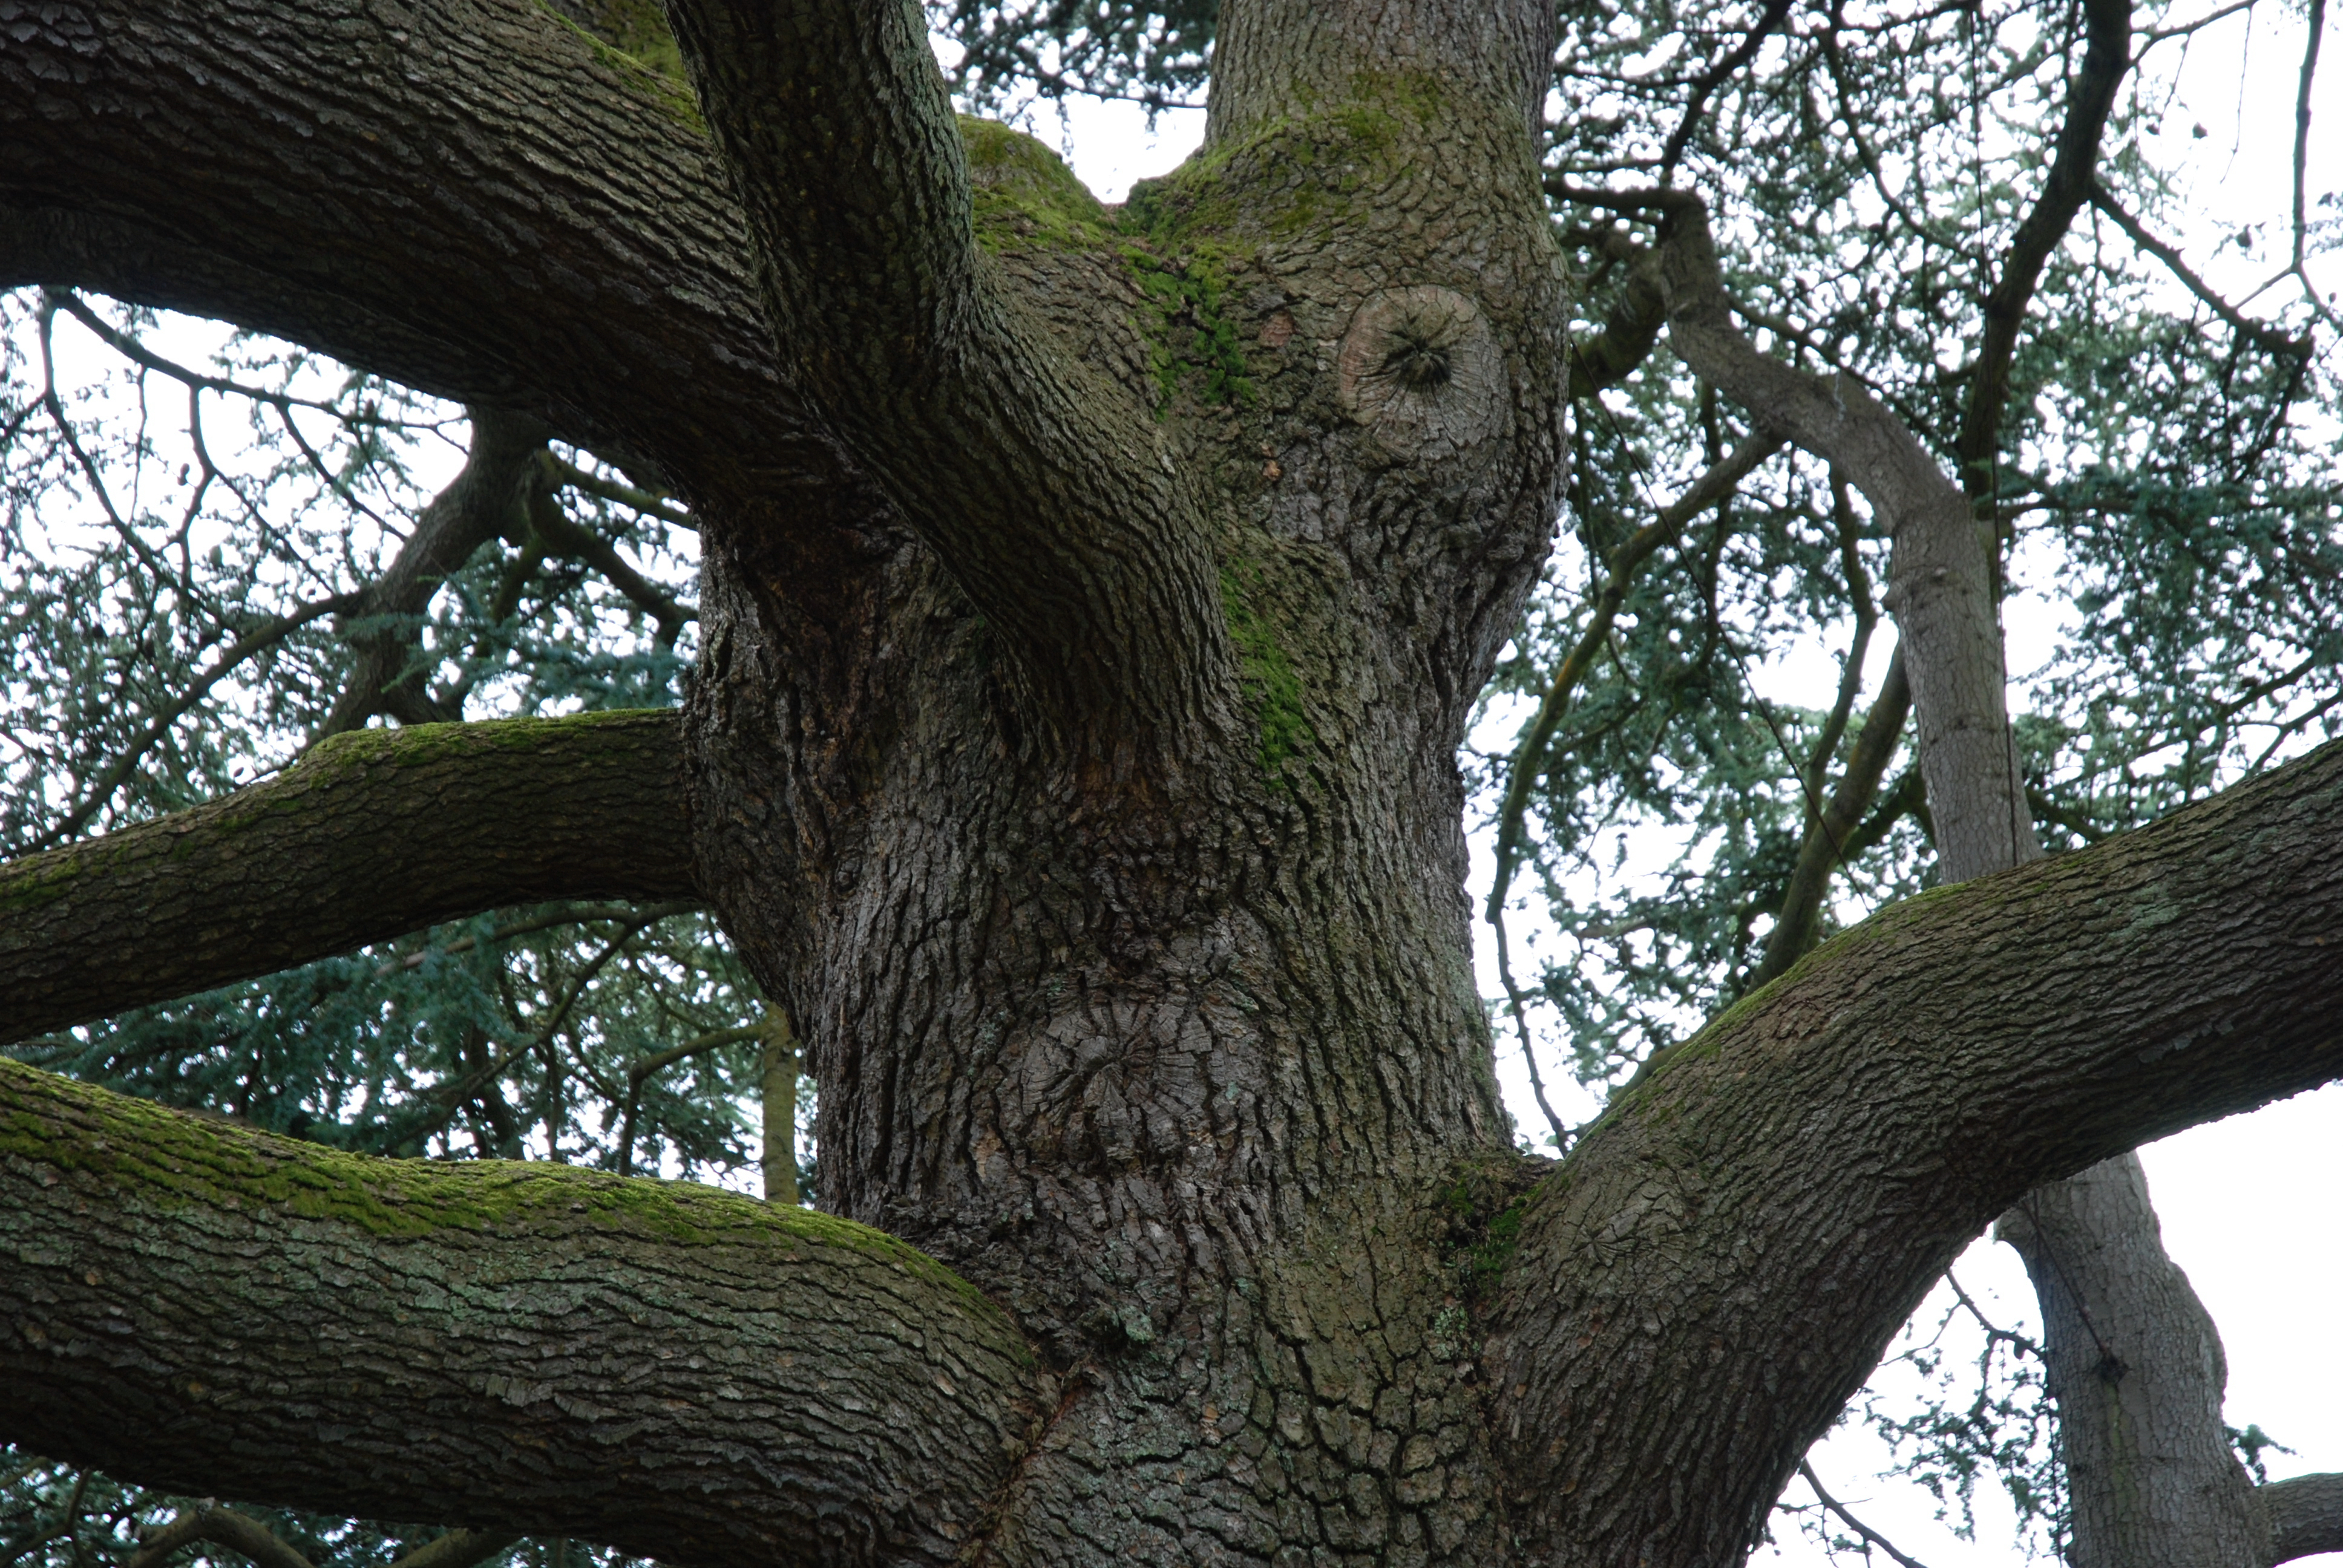 A close up section of a tree of around two metres diameter spouting six or so closely positioned brances of arounf half a metre each. A couple of knots and the positioning of one of the branches could be seen as resembling a face